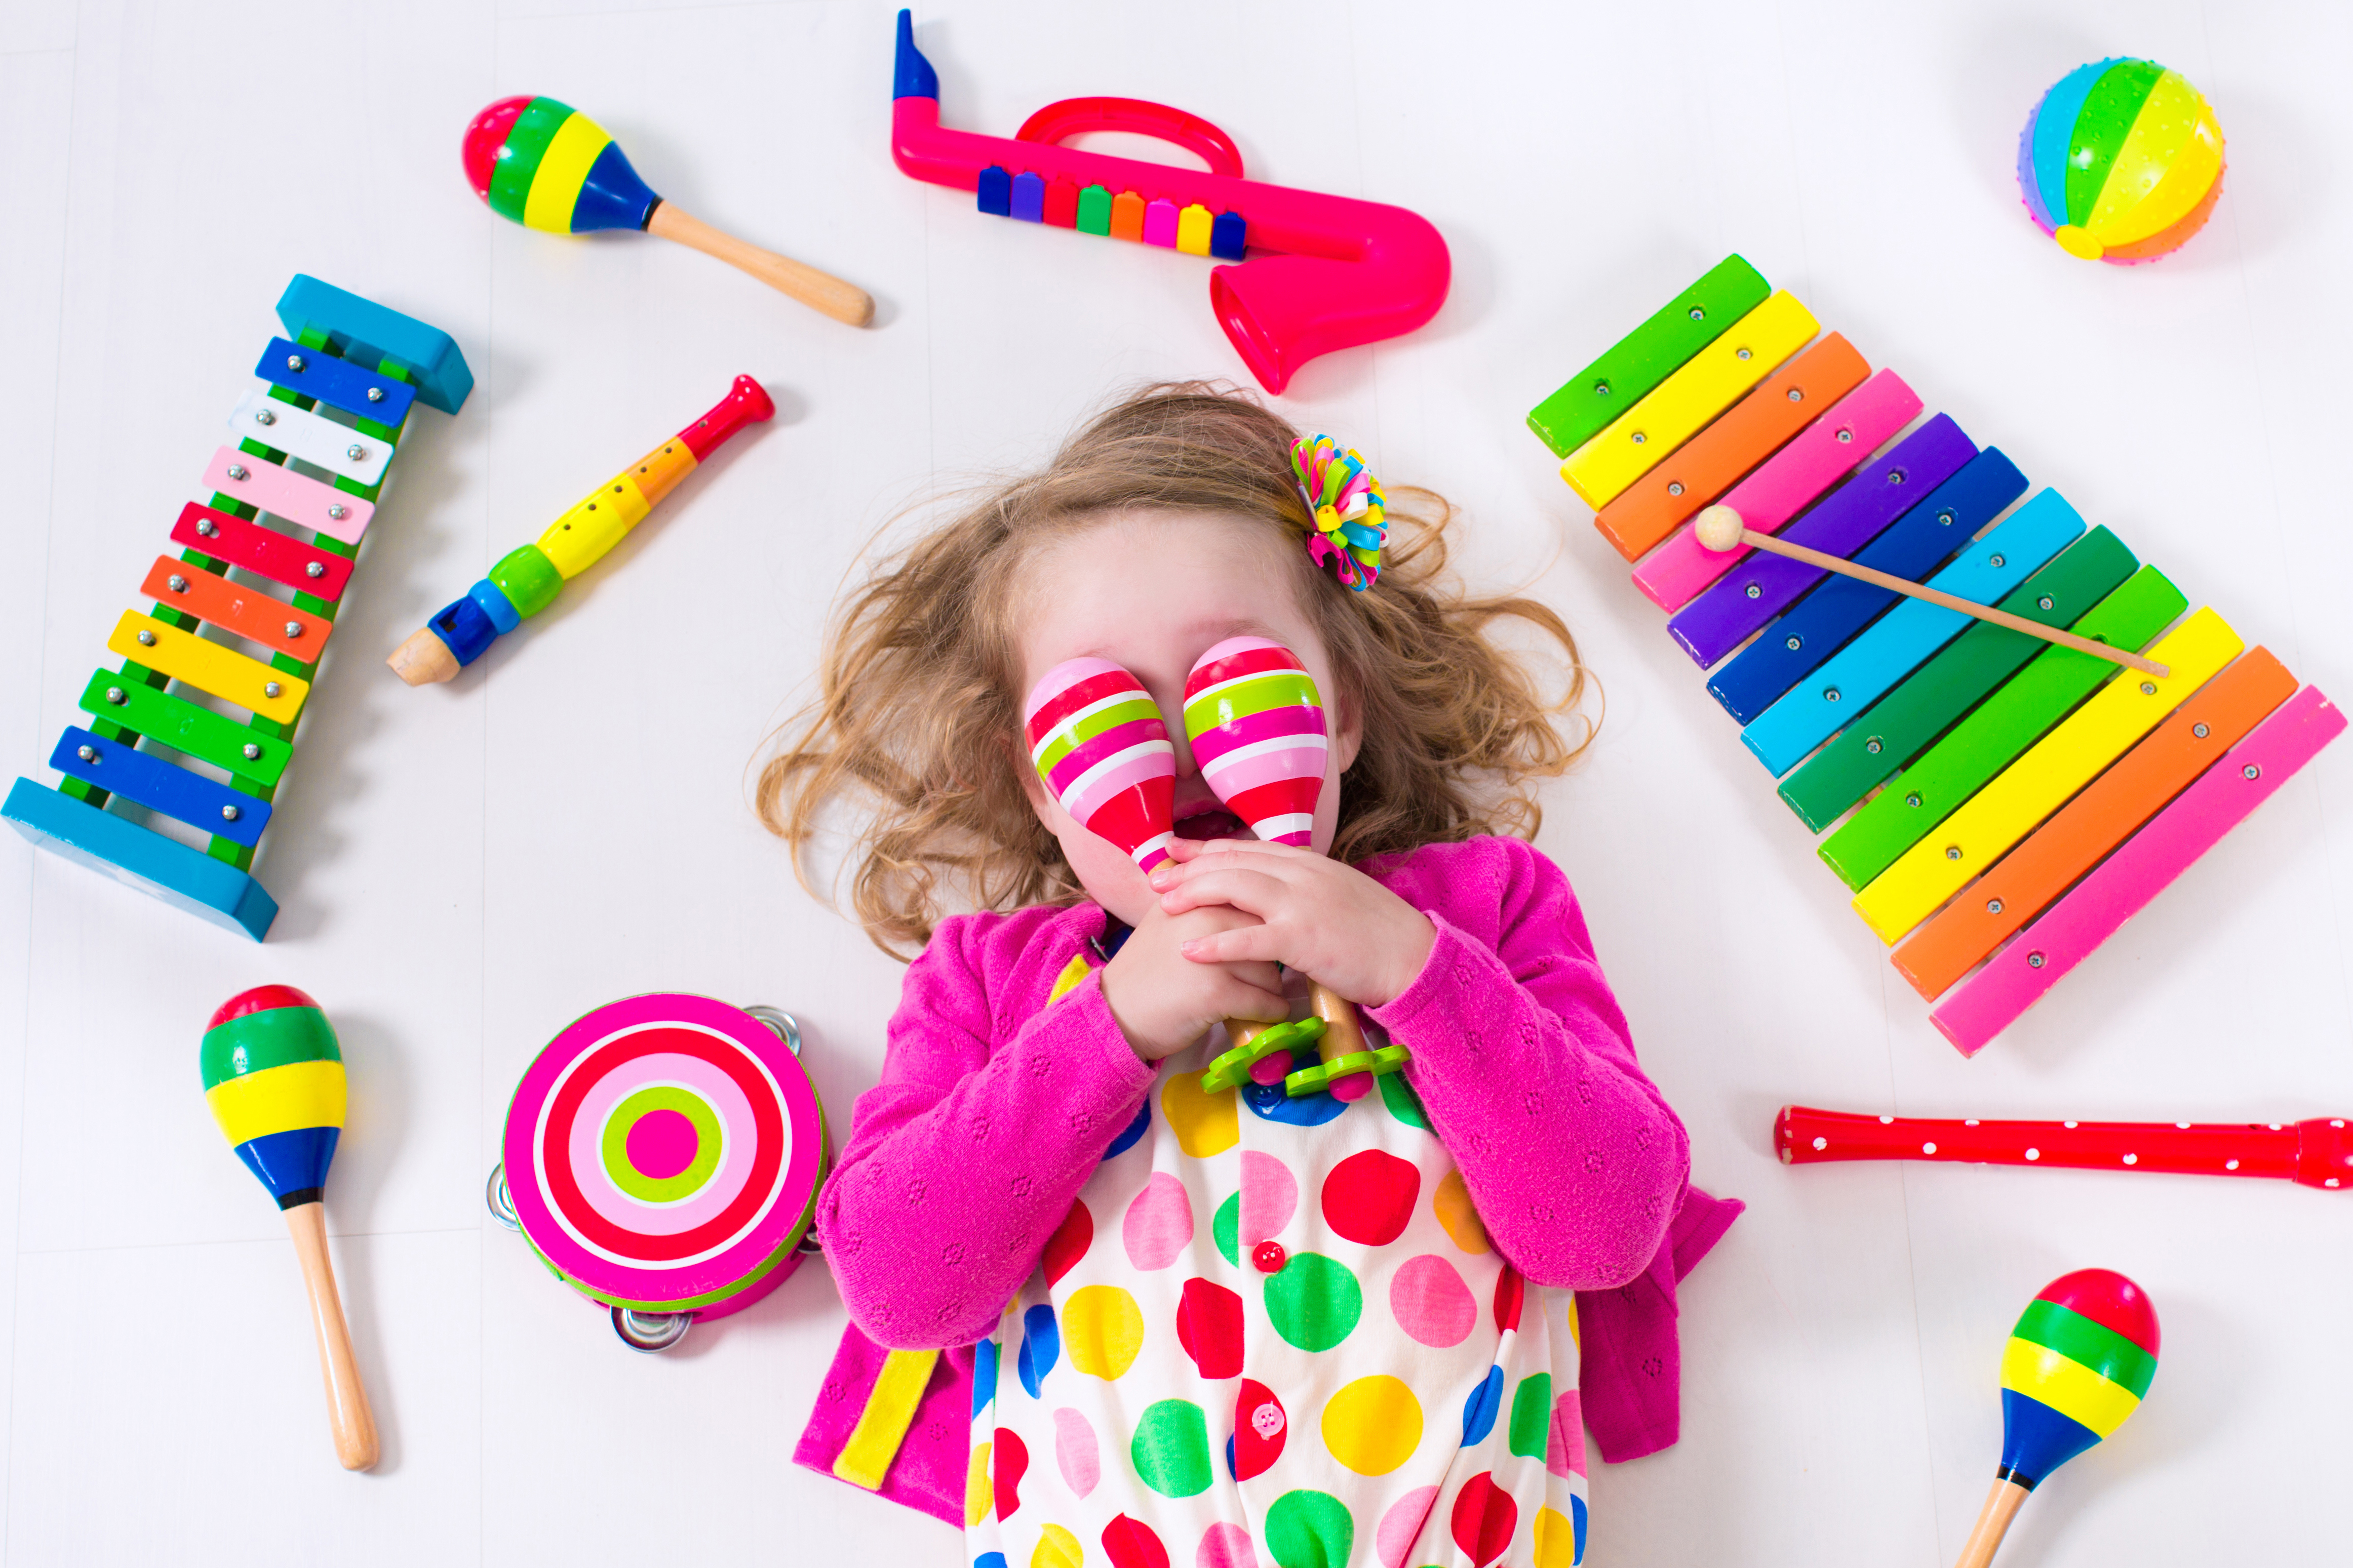 Child with music instruments. Musical education for kids. Colorful wooden art toys for kids. Little girl playing music. Kid with xylophone, guitar, flute.